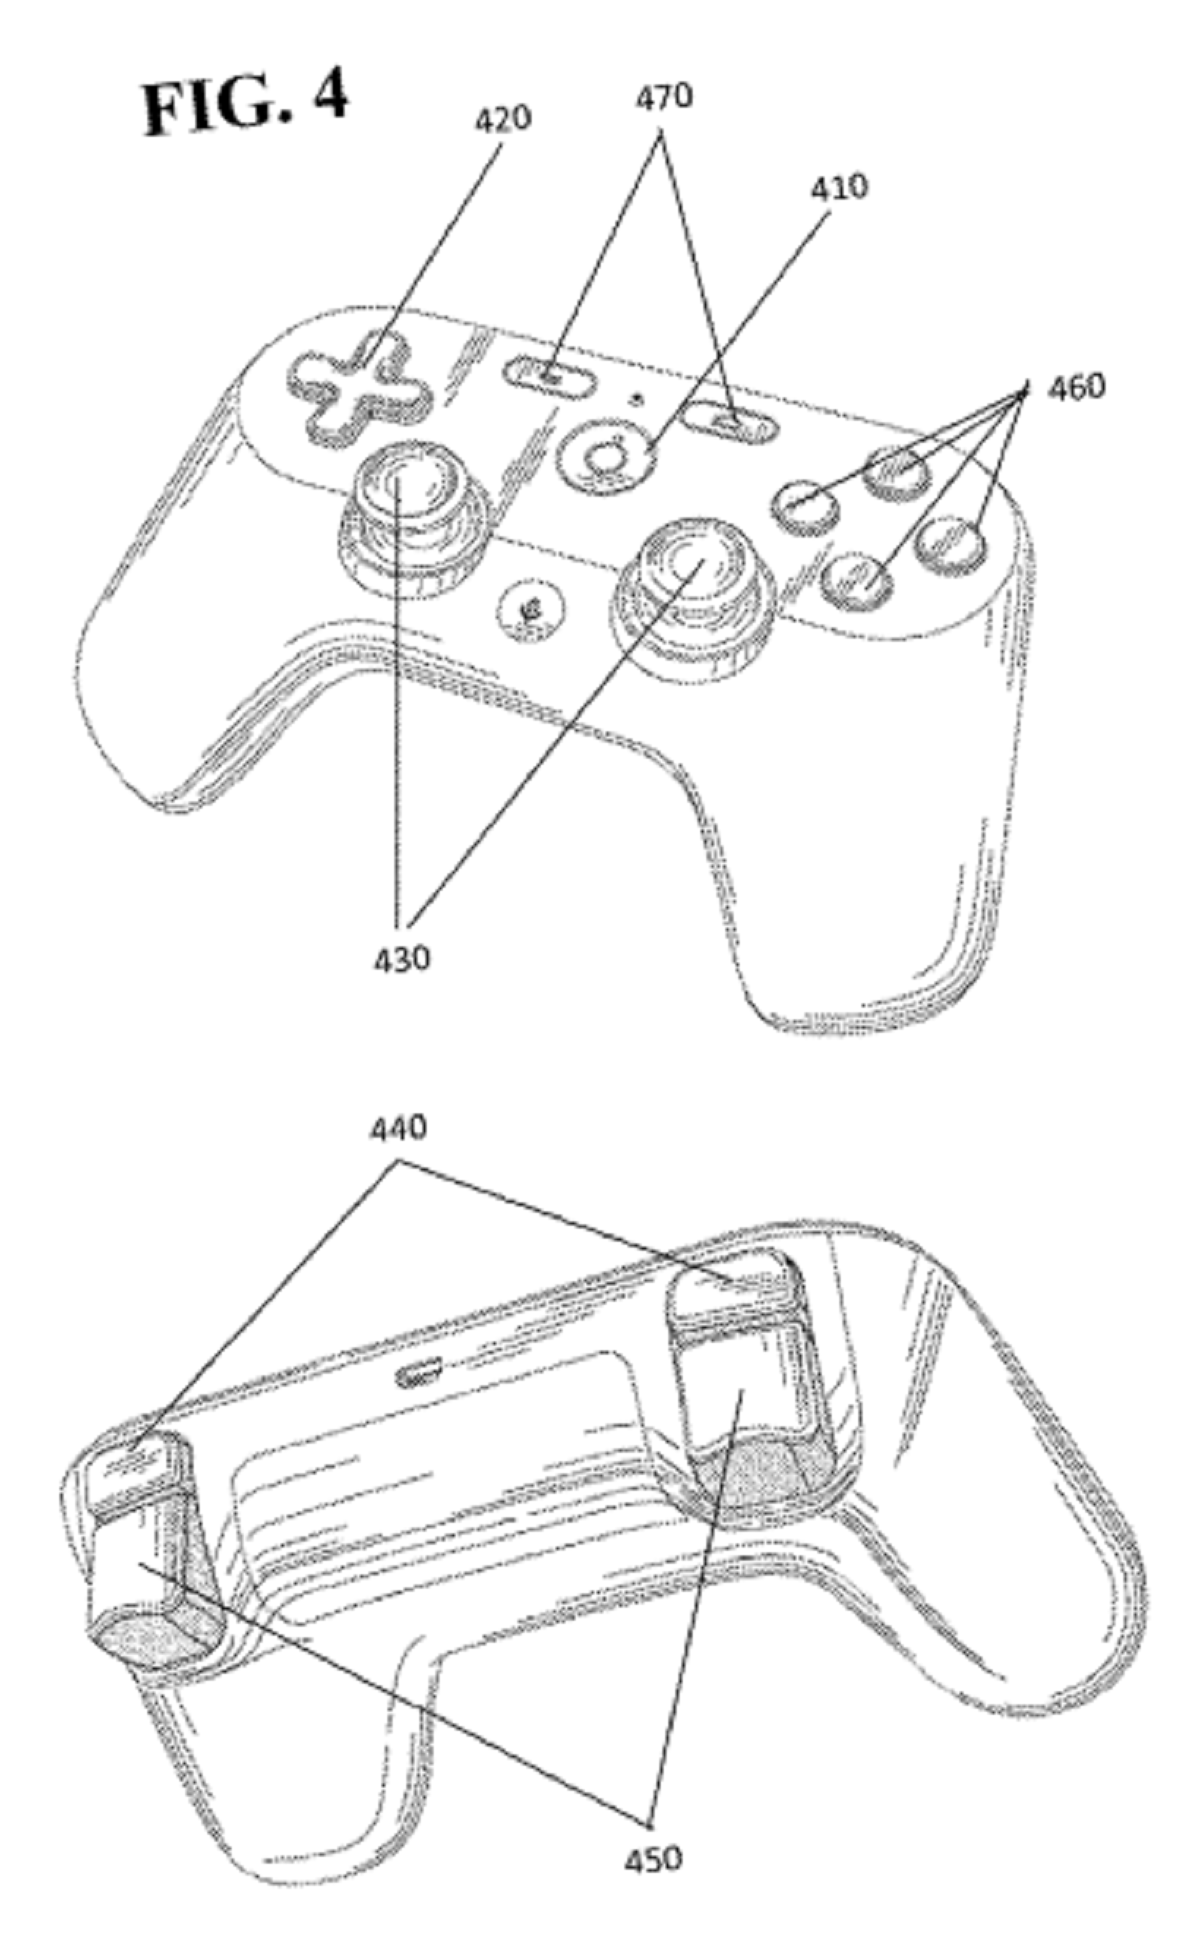 The image filed with the U.S. Patent and Trademark Office confirms the controller will feature two shoulder buttons.